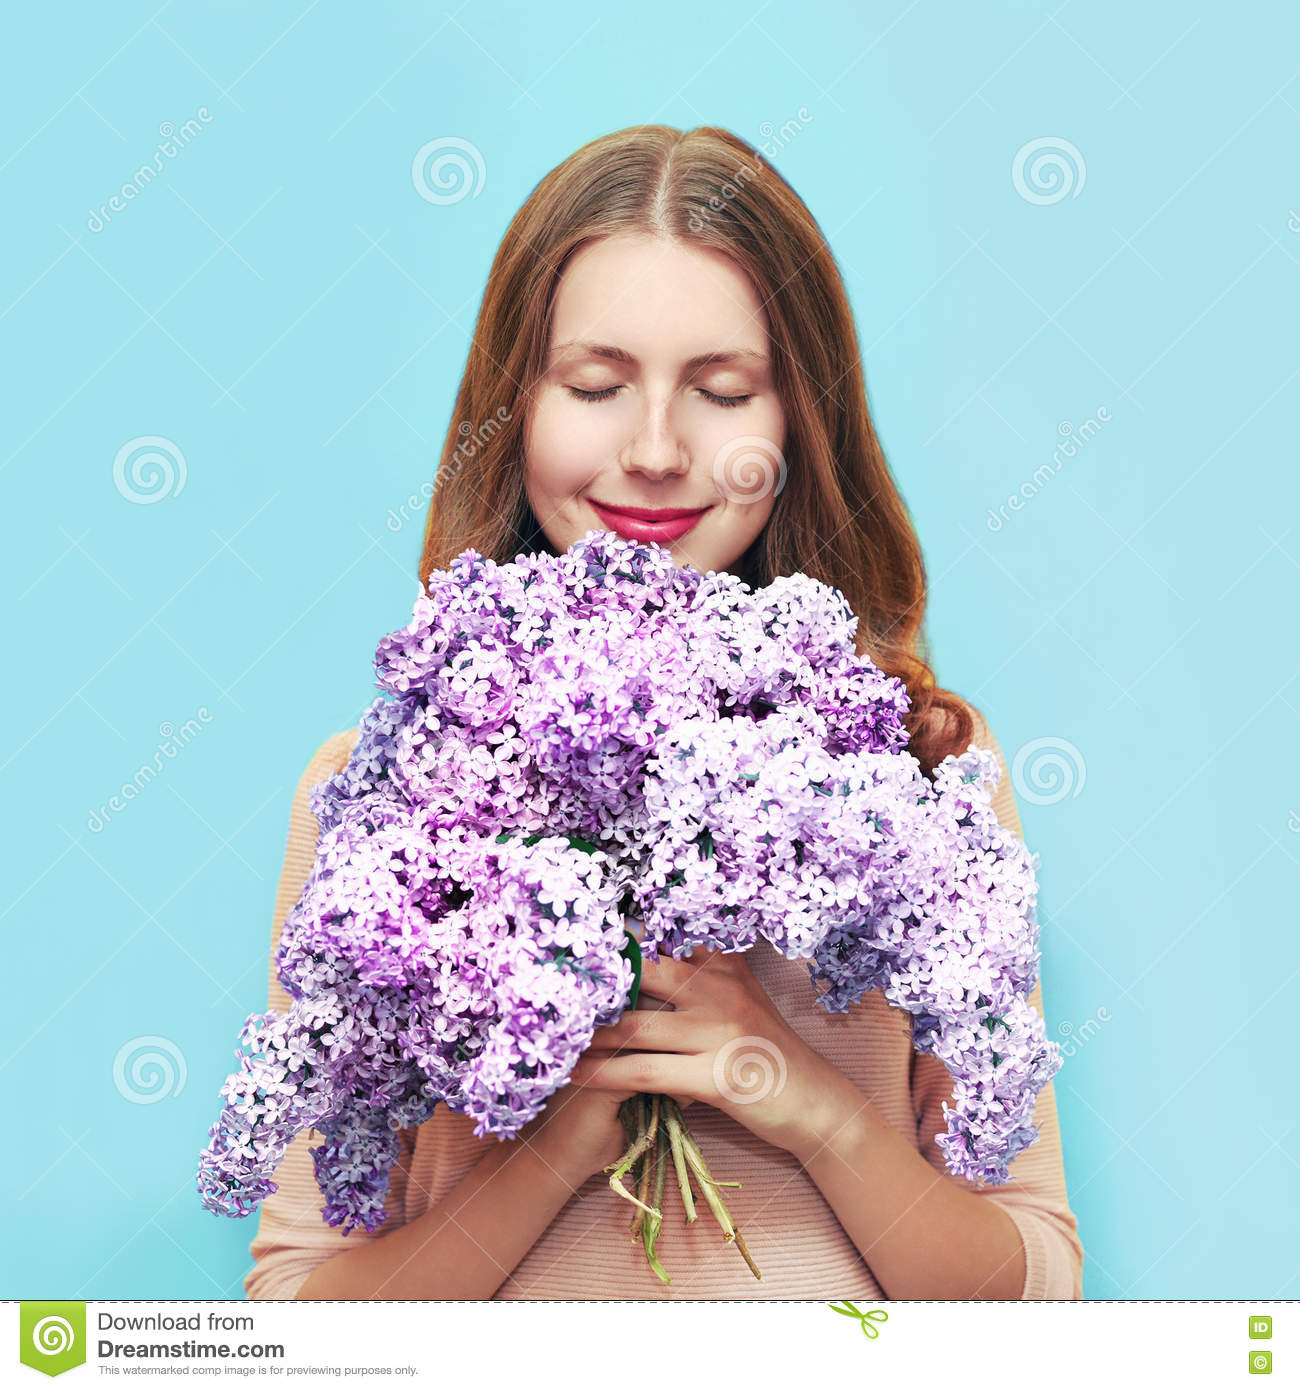 Happy smiling woman enjoying smell bouquet lilac flowers over colorful blue background